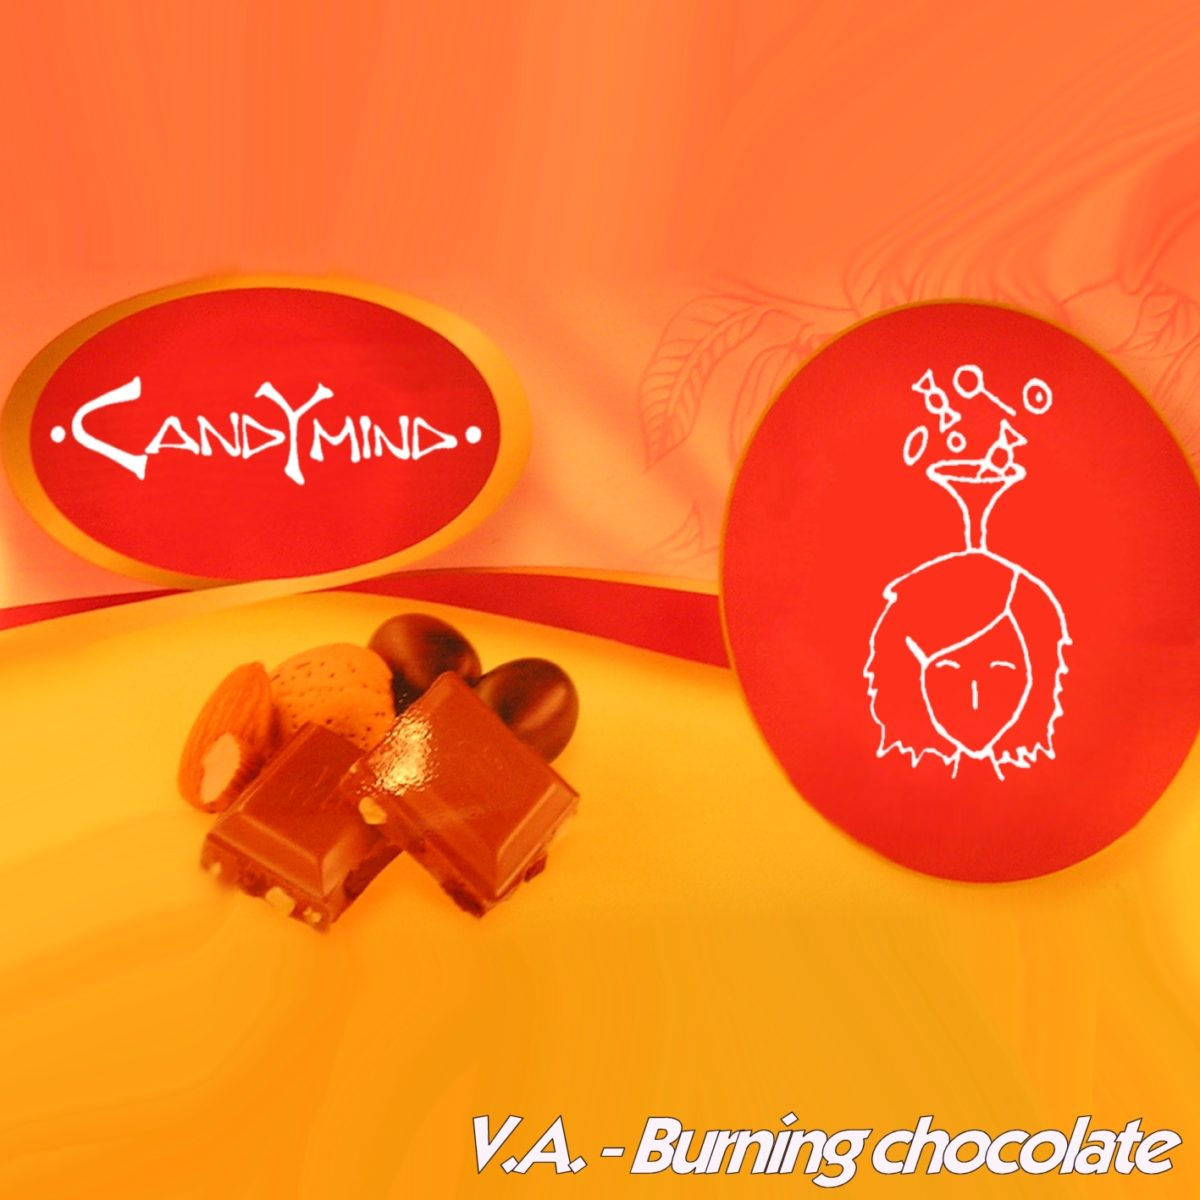 V/A: Burning Chocolate (Candymind MP3)